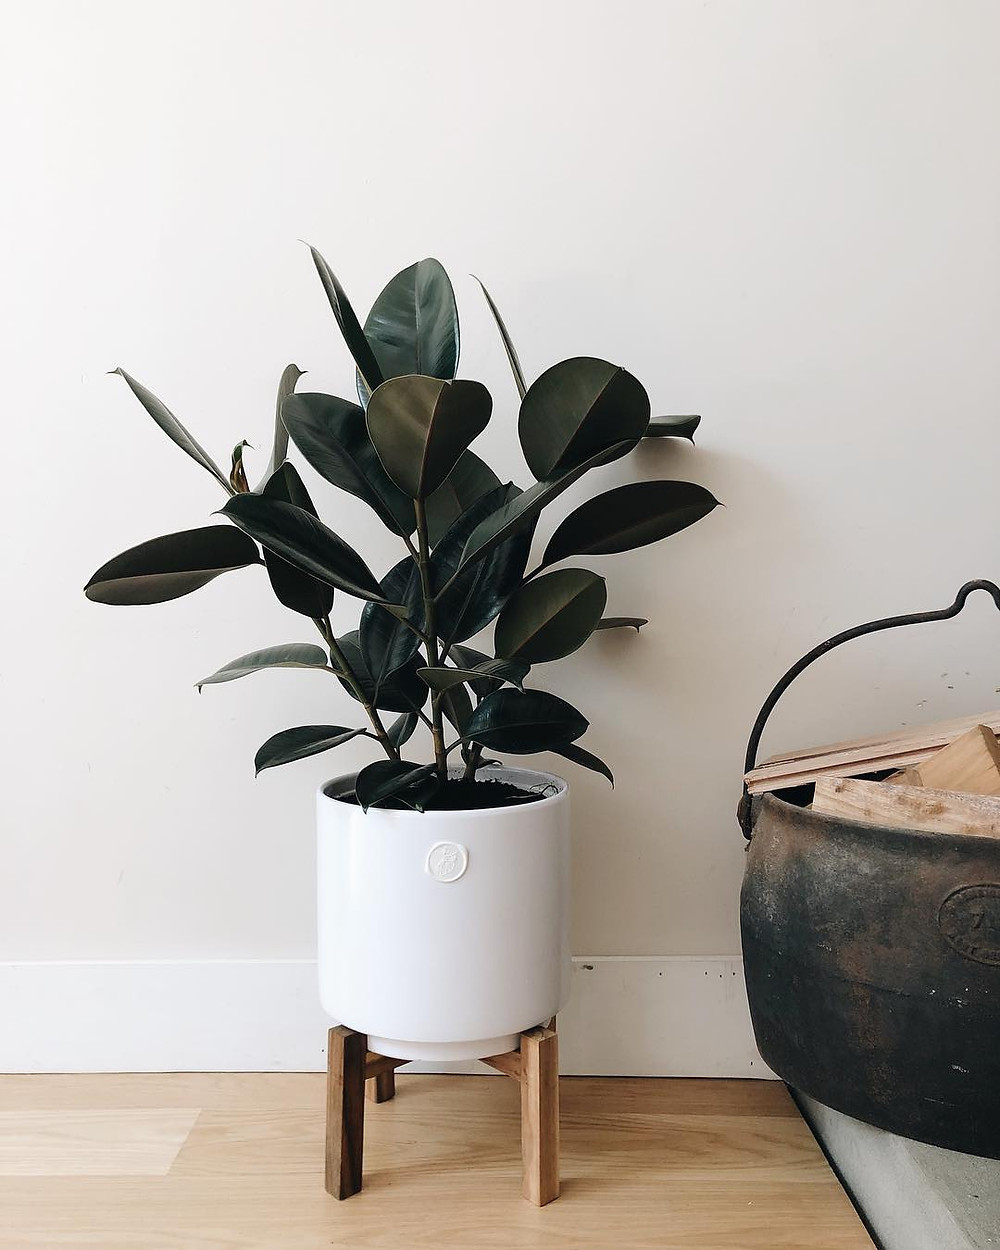 Rubber Plant Plants For Bedroom Sleep